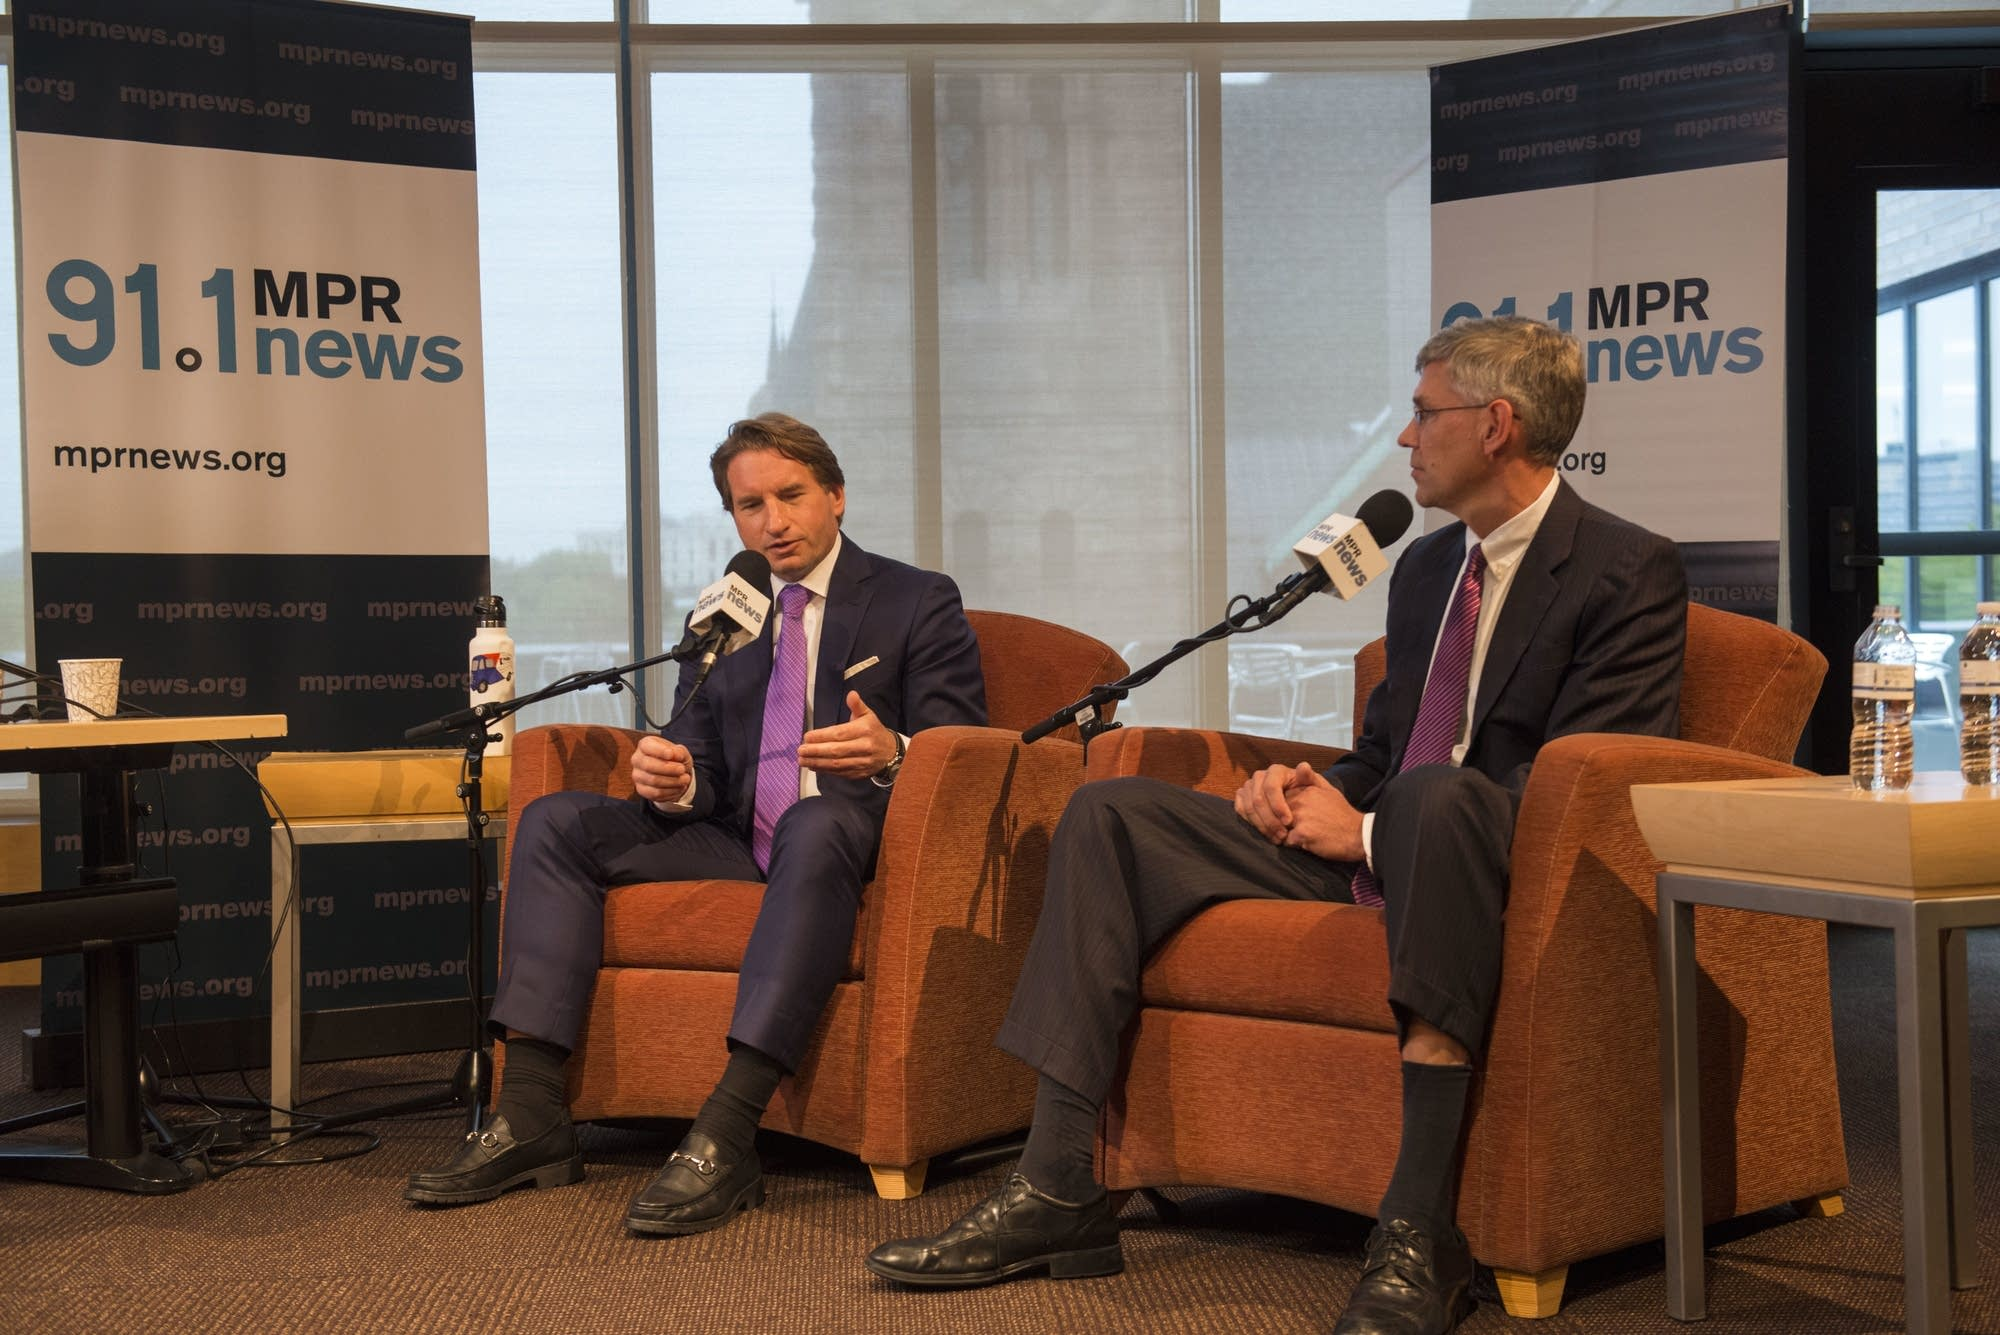 Erik Paulsen and Dean Phillips debate hosted at UBS Forum at MPR, Oct. 5.